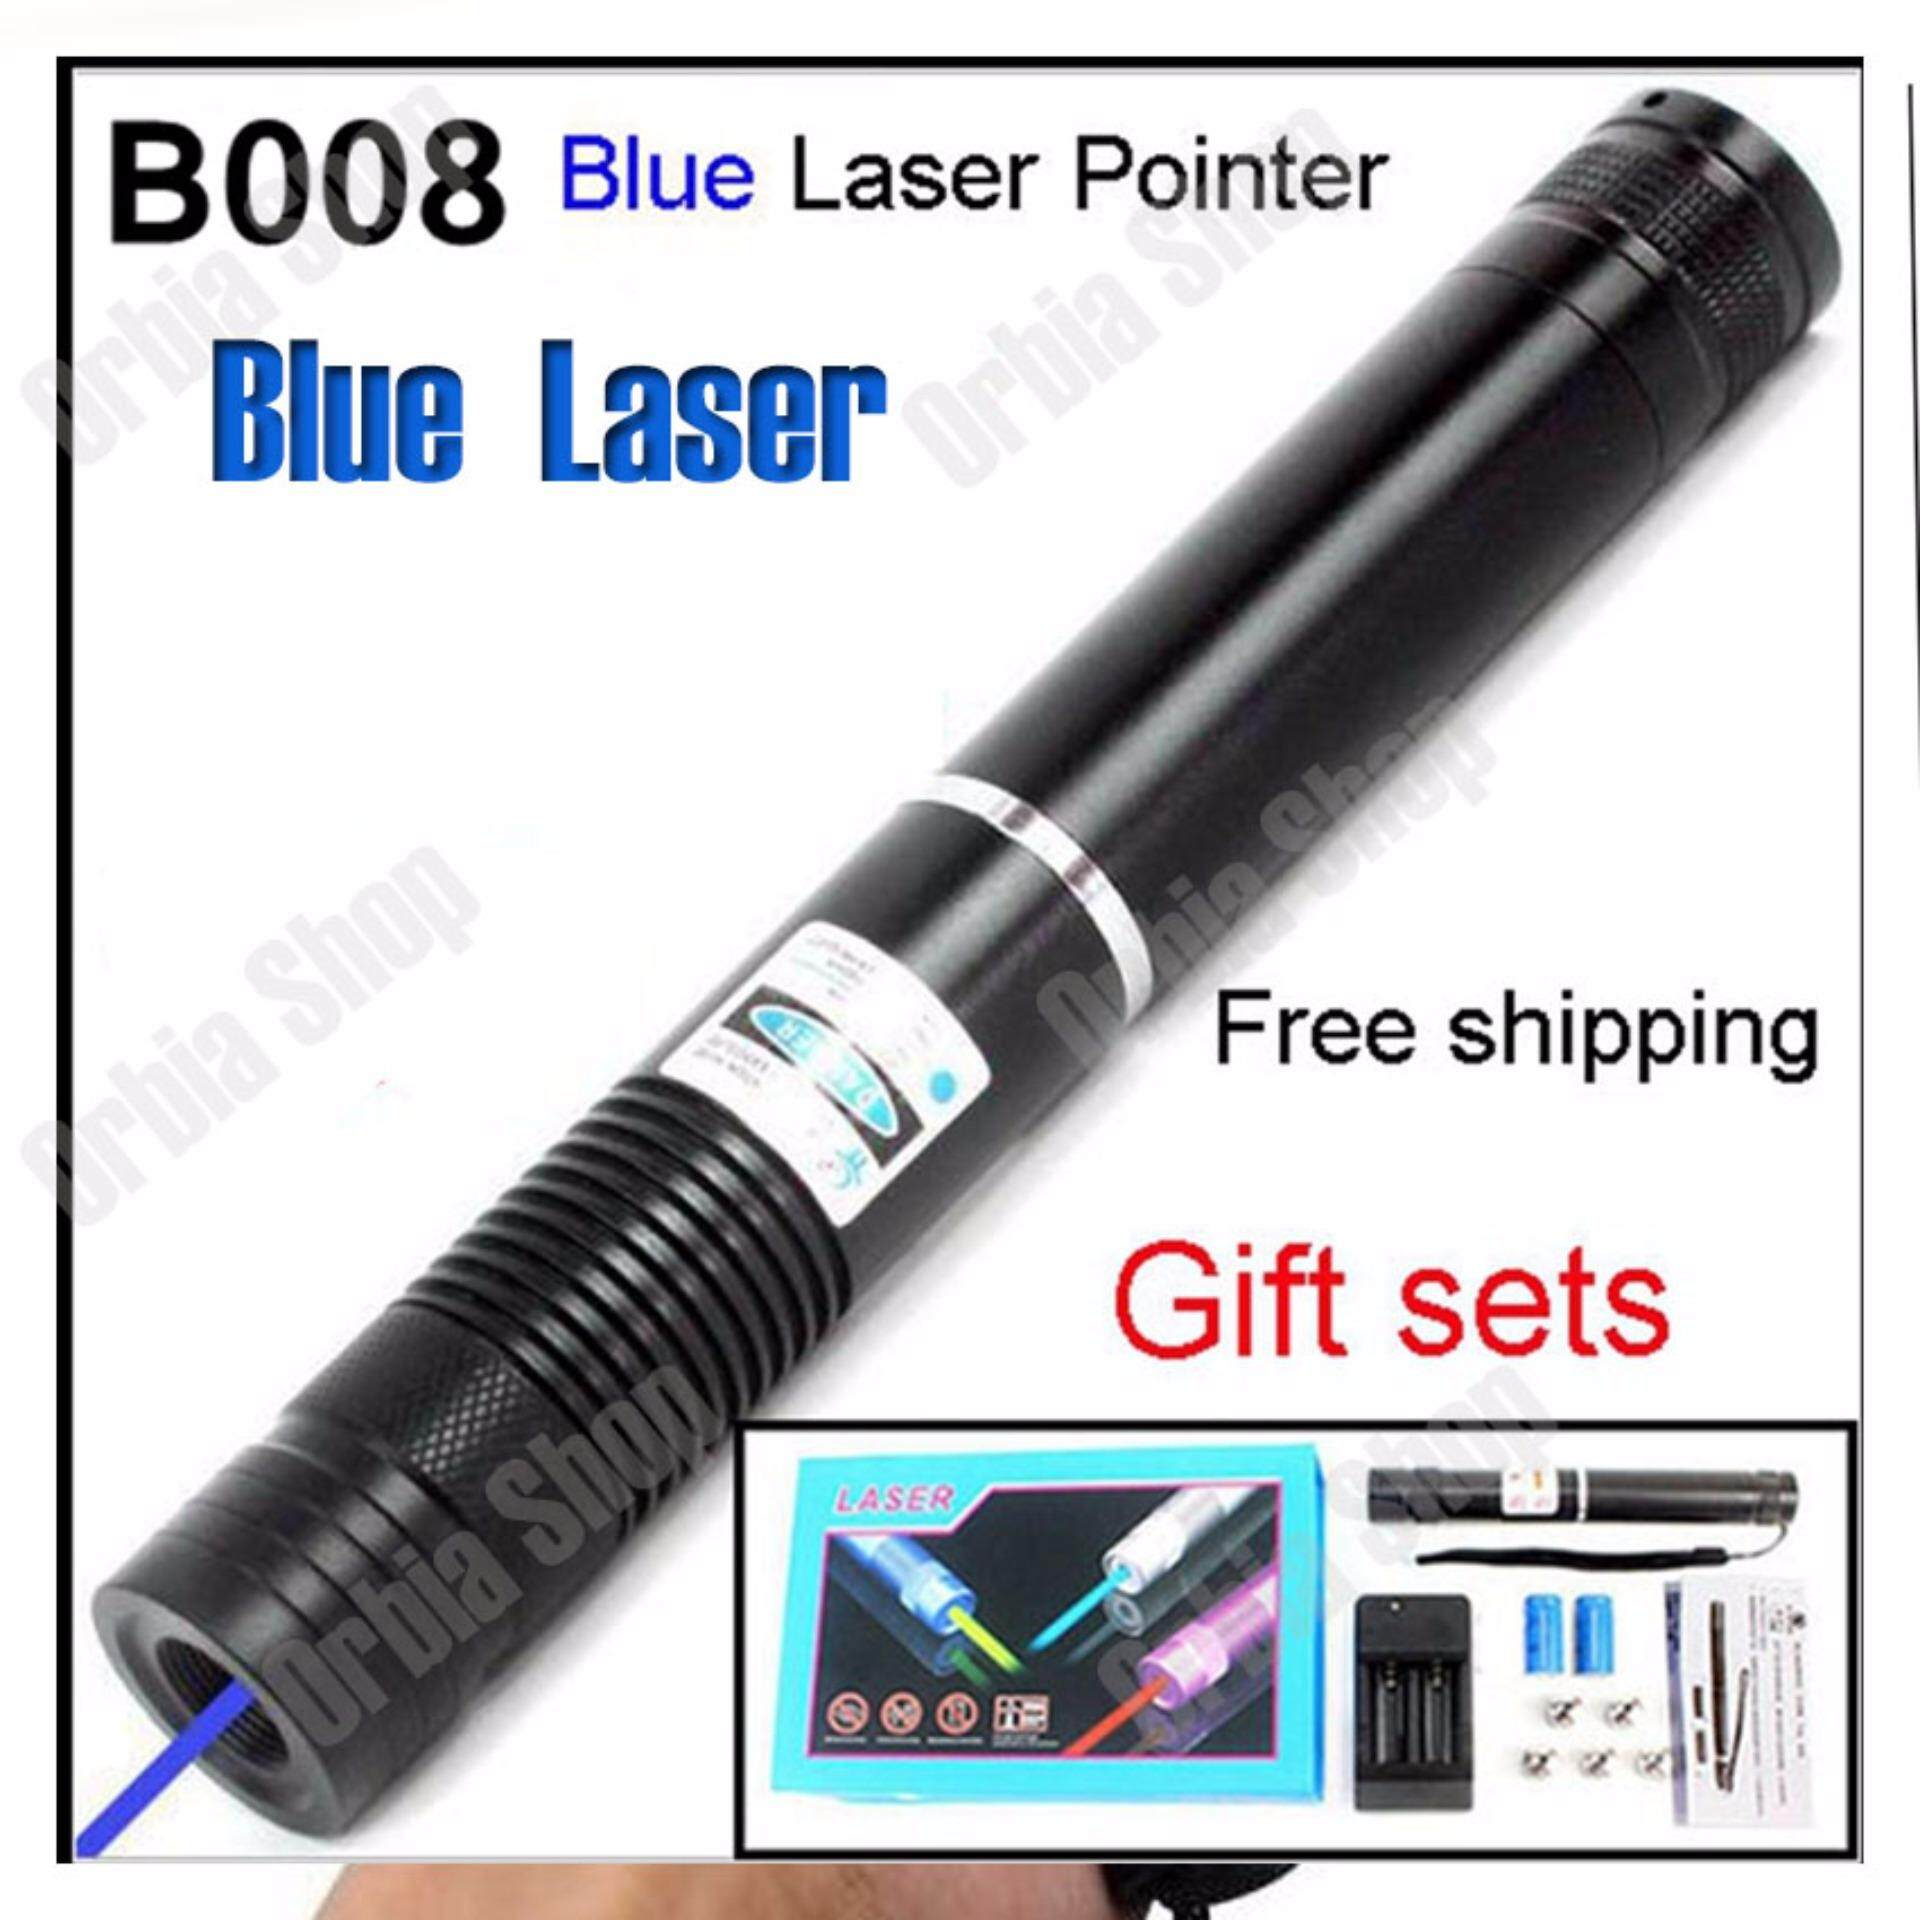 YX-B008 Powerful 5000mW 450nm Blue Beam Laser Pointer with LC16340 3.6V 1000mAh Battery-Black